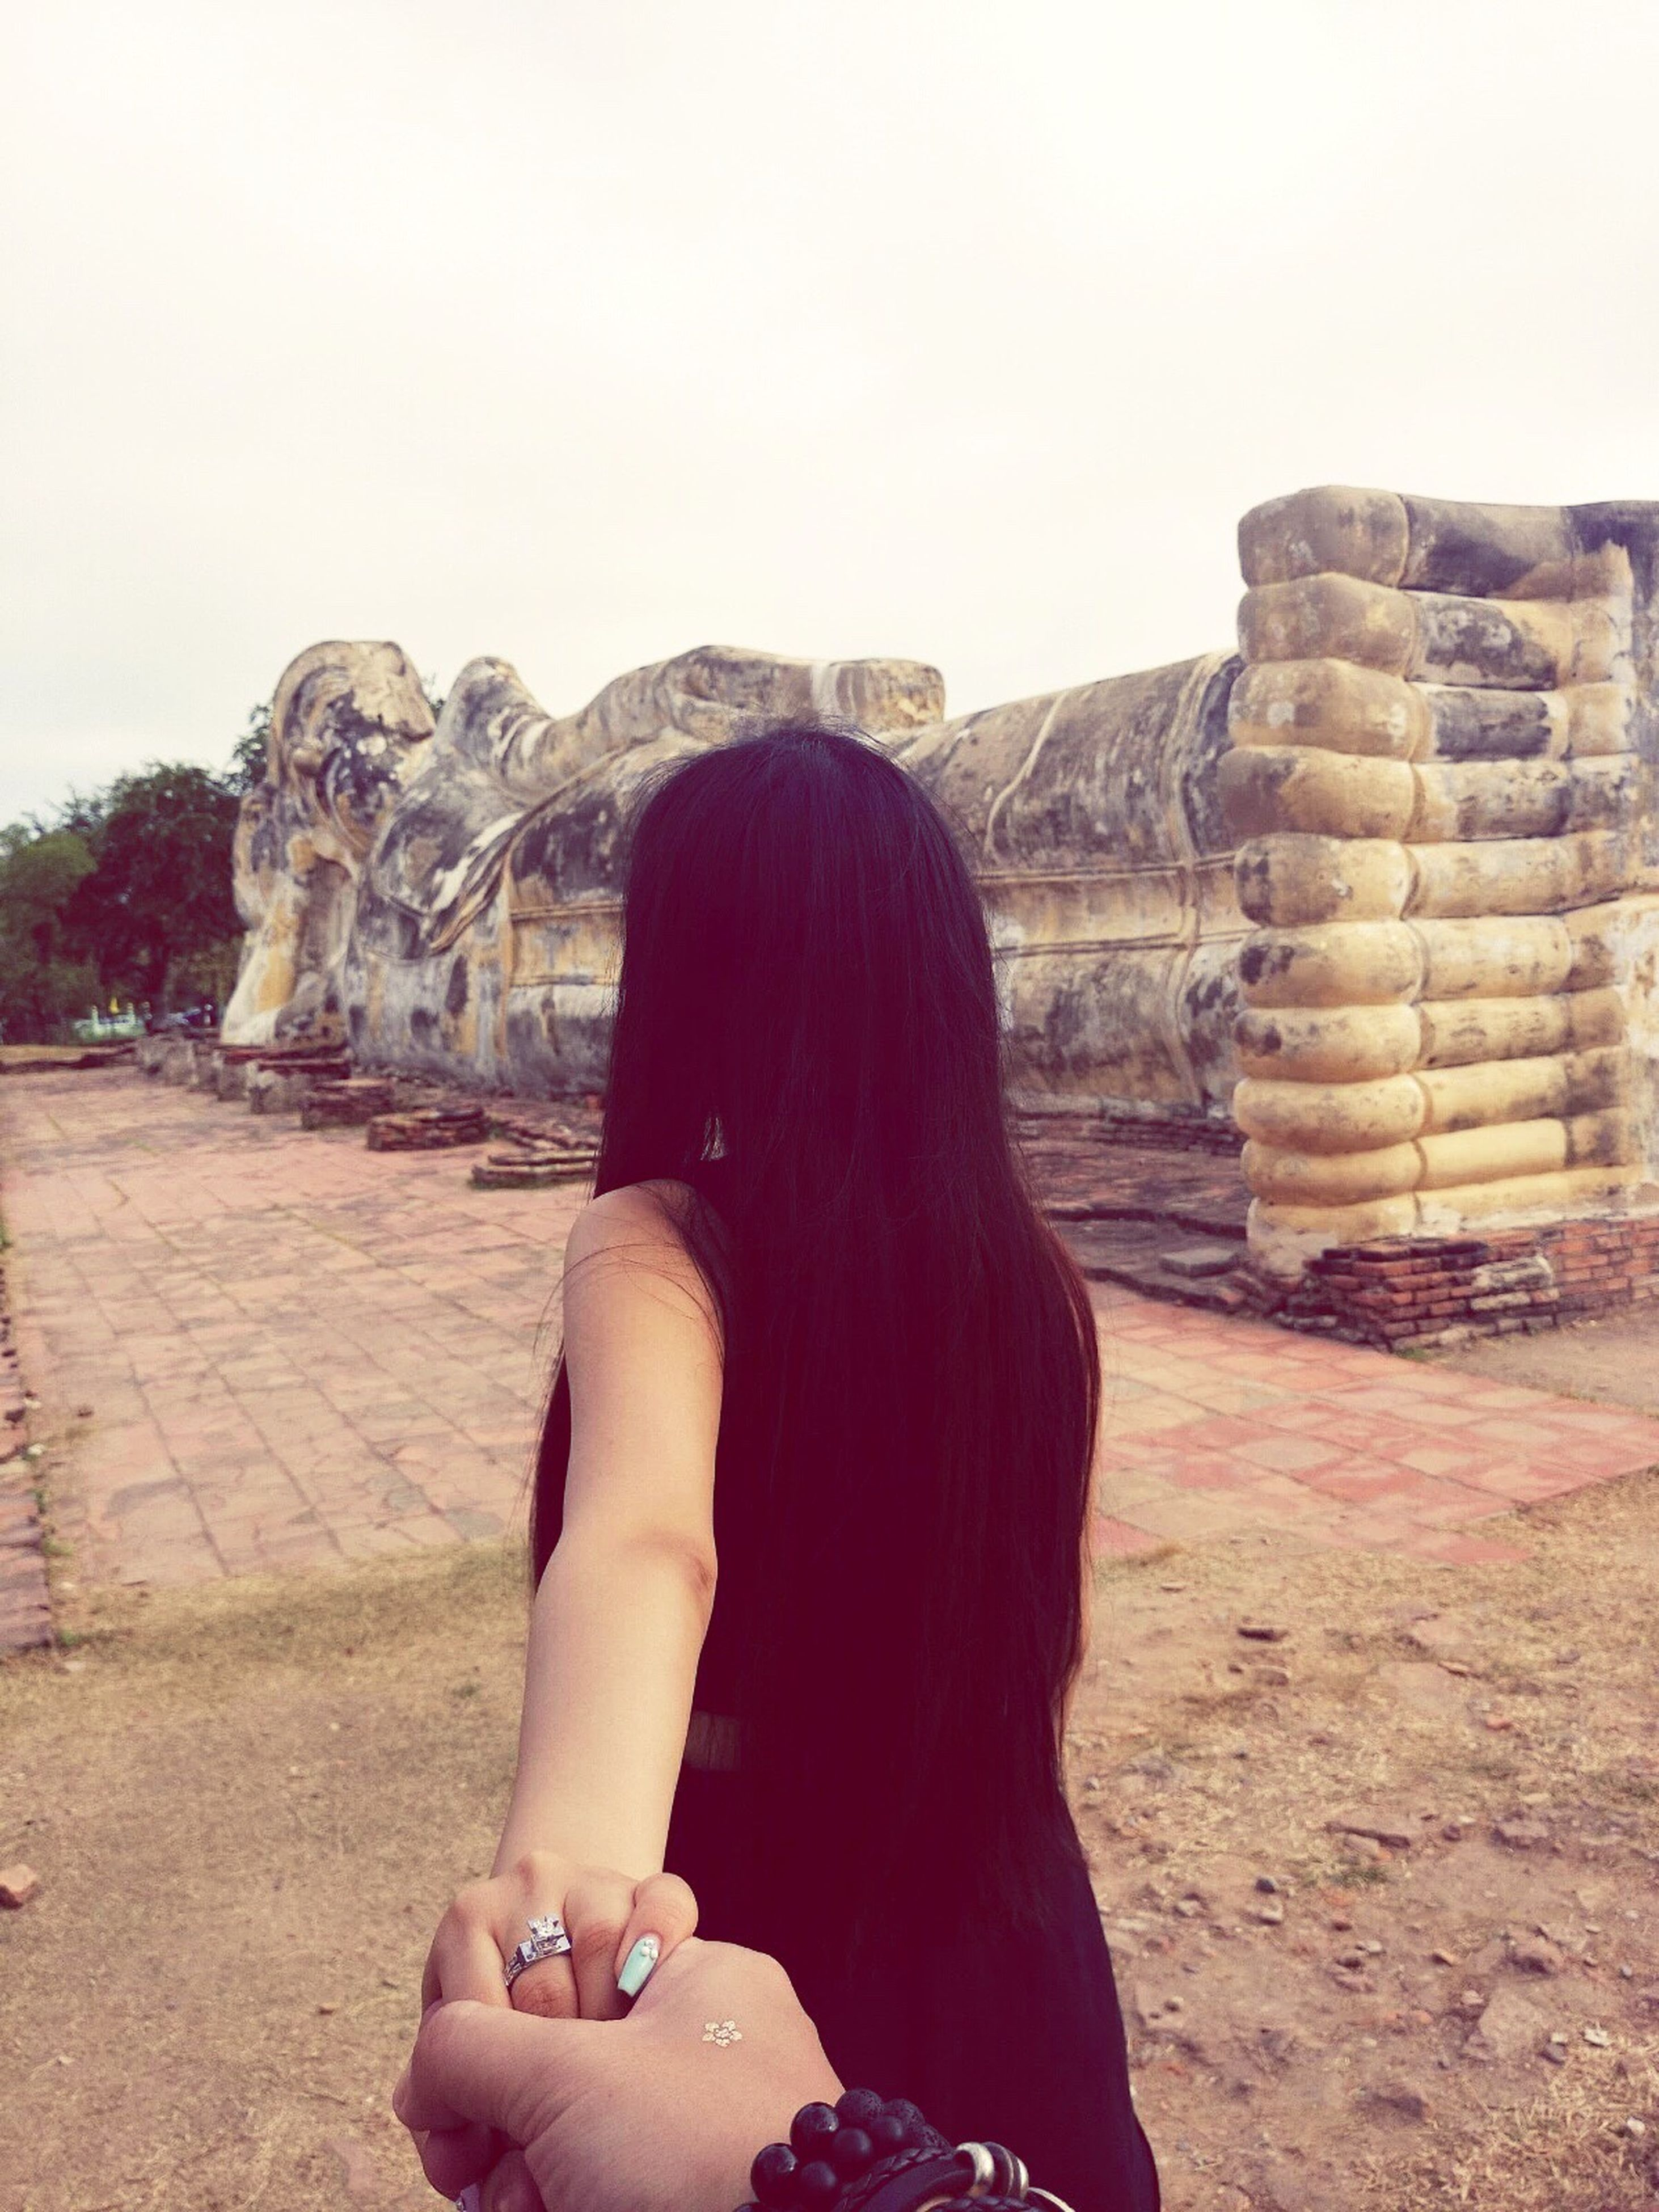 lifestyles, leisure activity, person, rear view, young adult, young women, casual clothing, clear sky, standing, built structure, full length, architecture, sitting, long hair, history, old ruin, day, building exterior